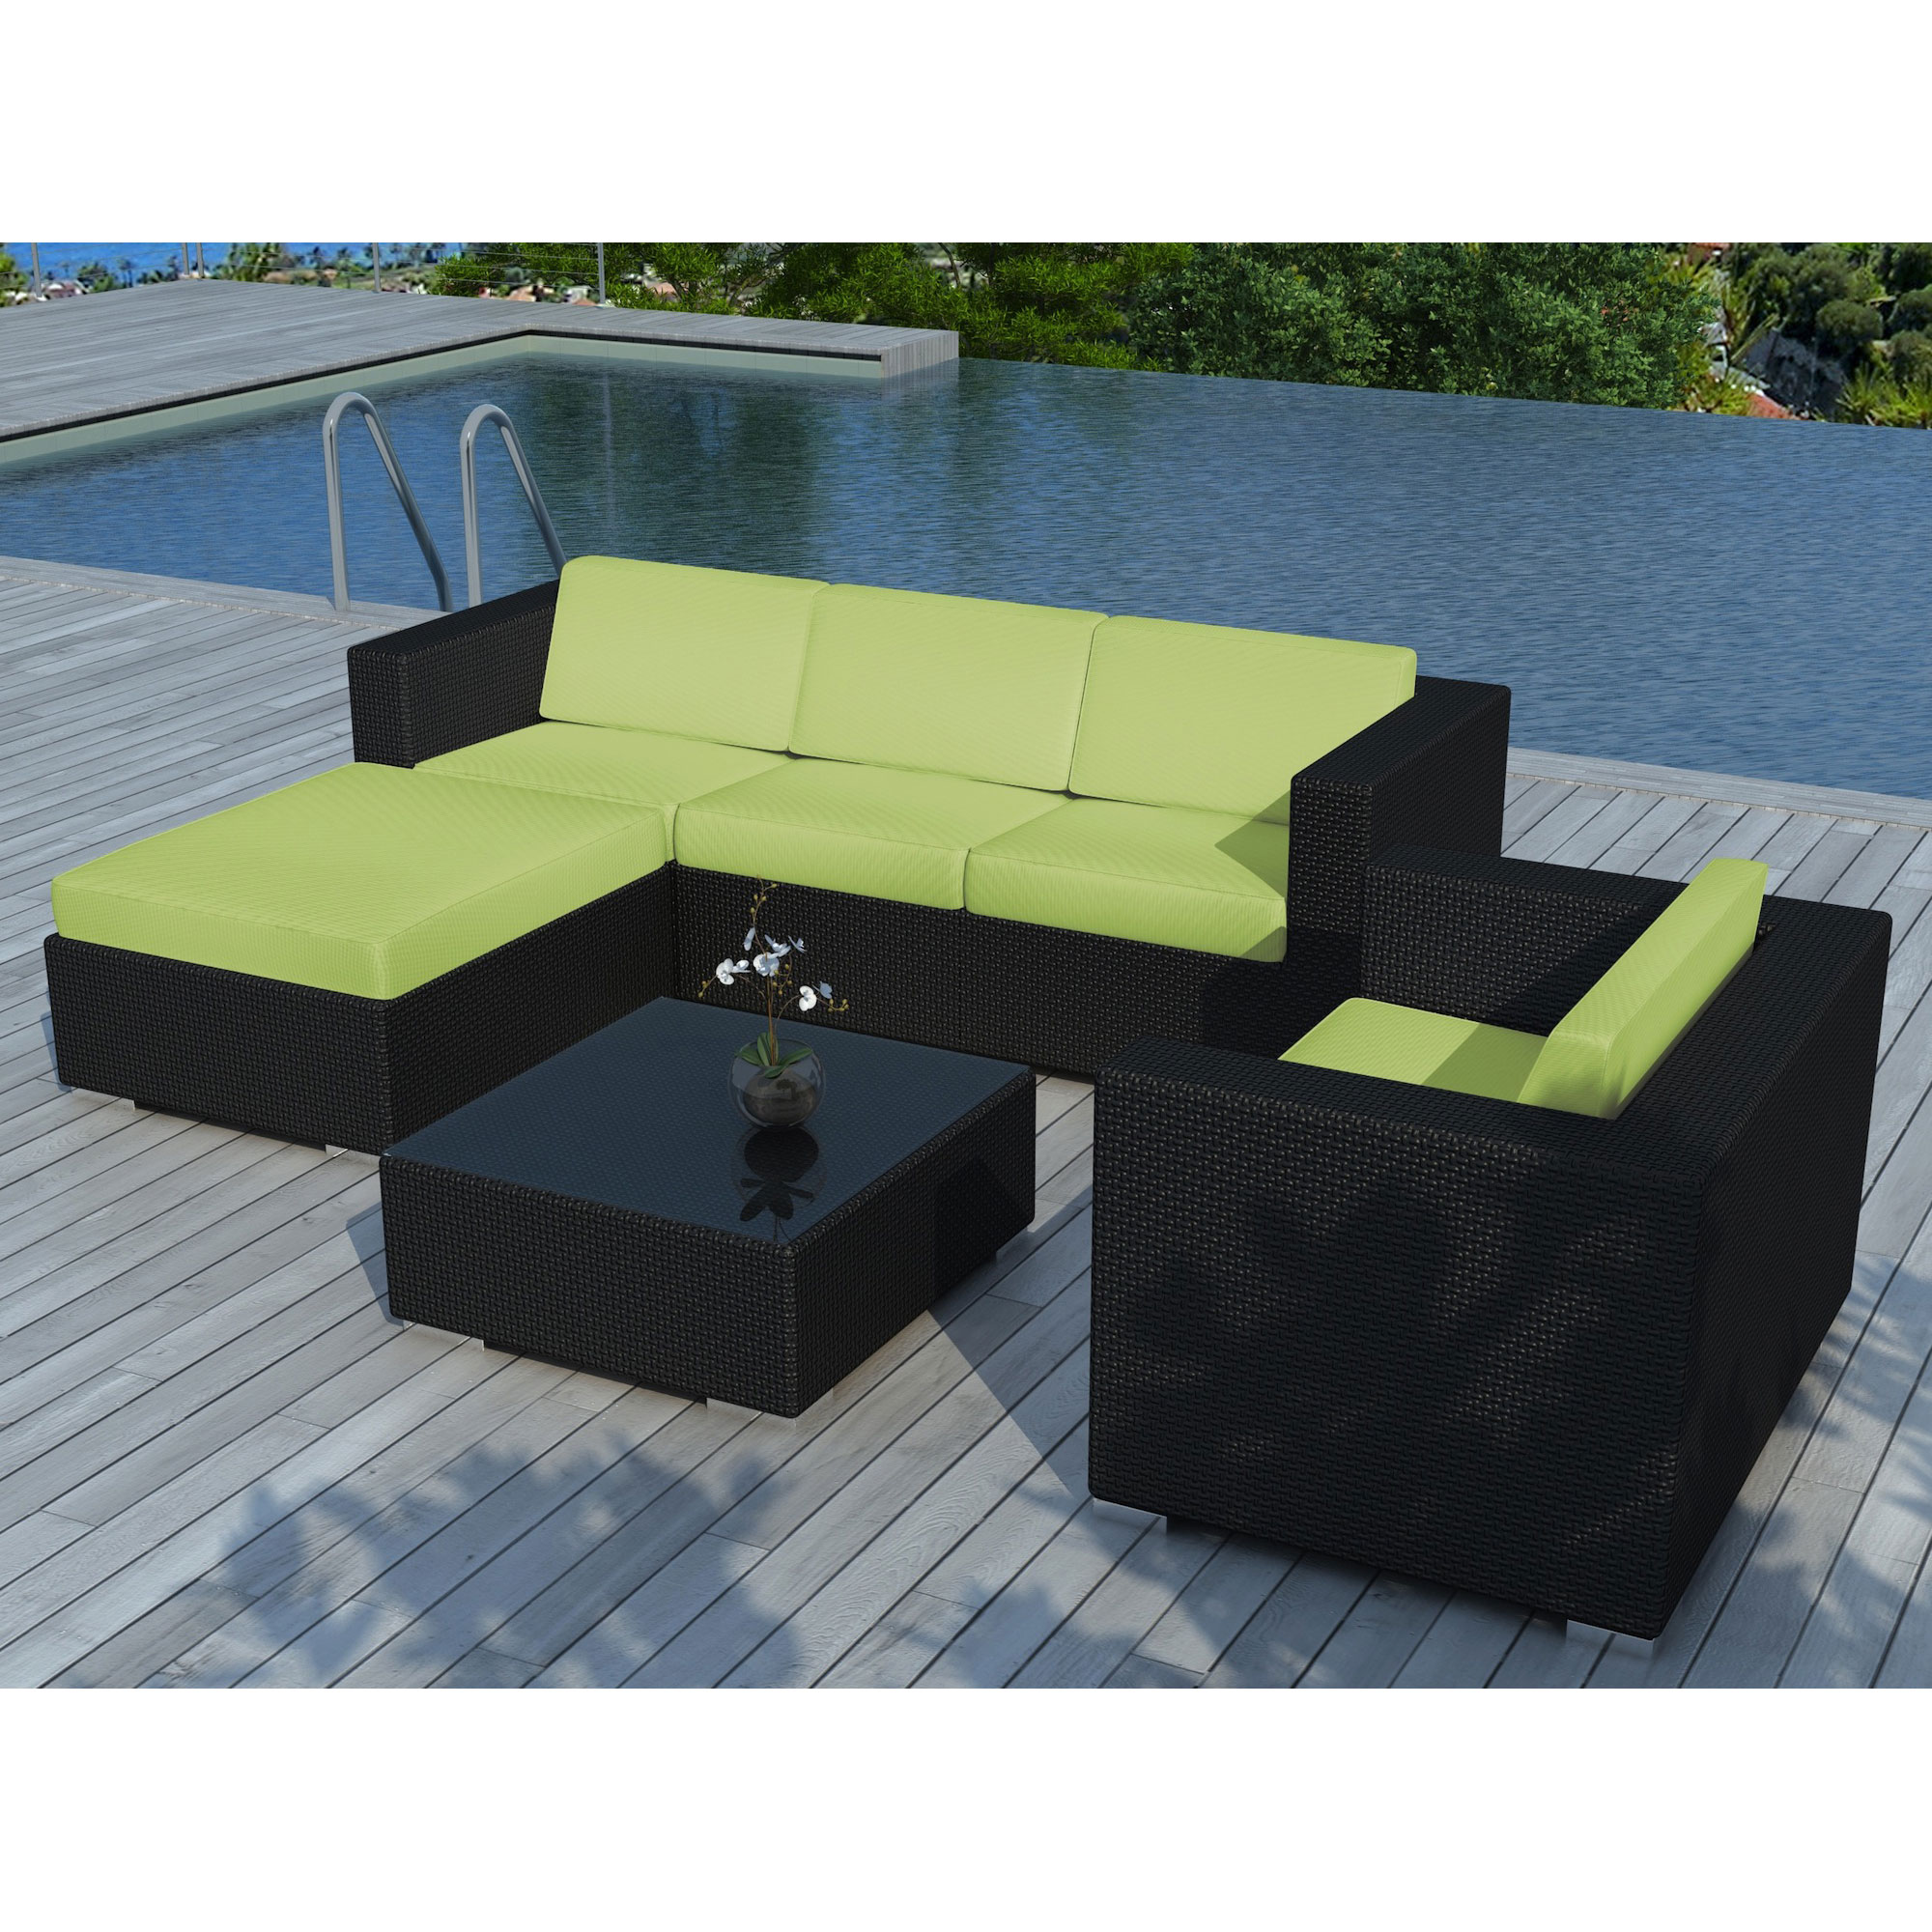 Salon de jardin table basse poufs